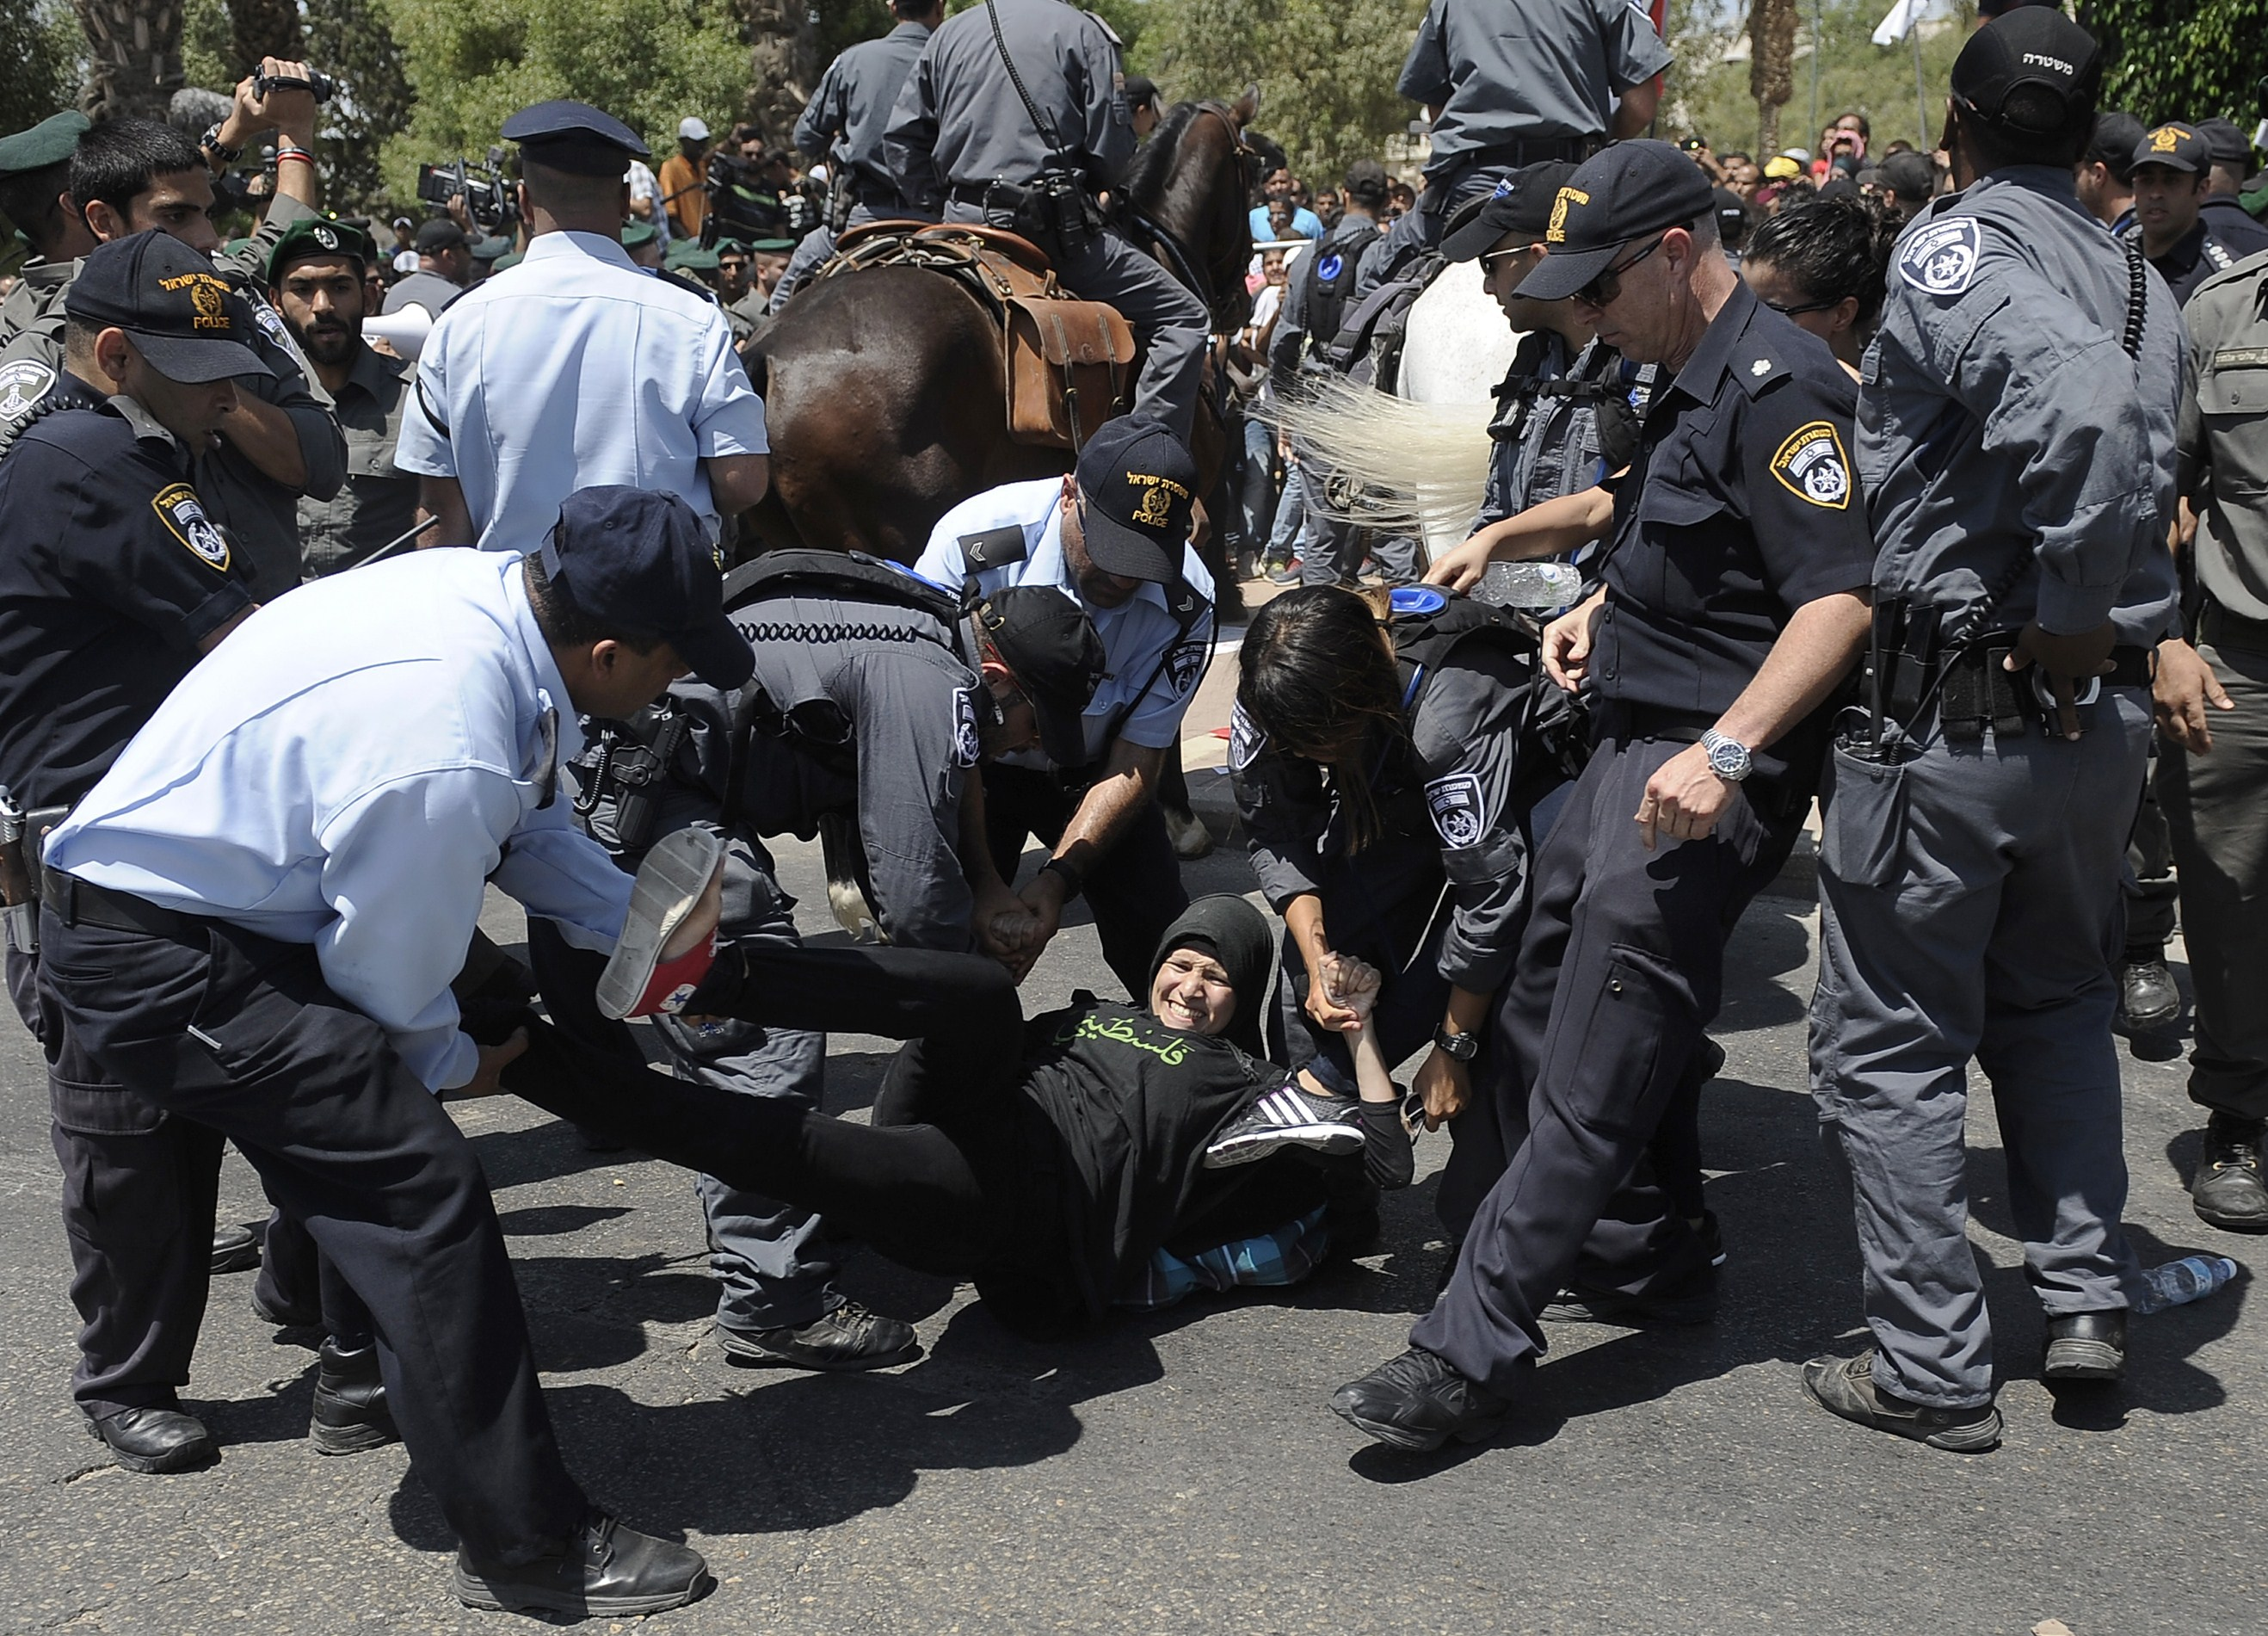 A Bedouin protestor (C) is detained by Israeli policemen during a demonstration against Israeli government's plans to relocate Bedouins in the Negev desert, on July 15, 2013 in the southern city of Beersheva. (AFP Photo)